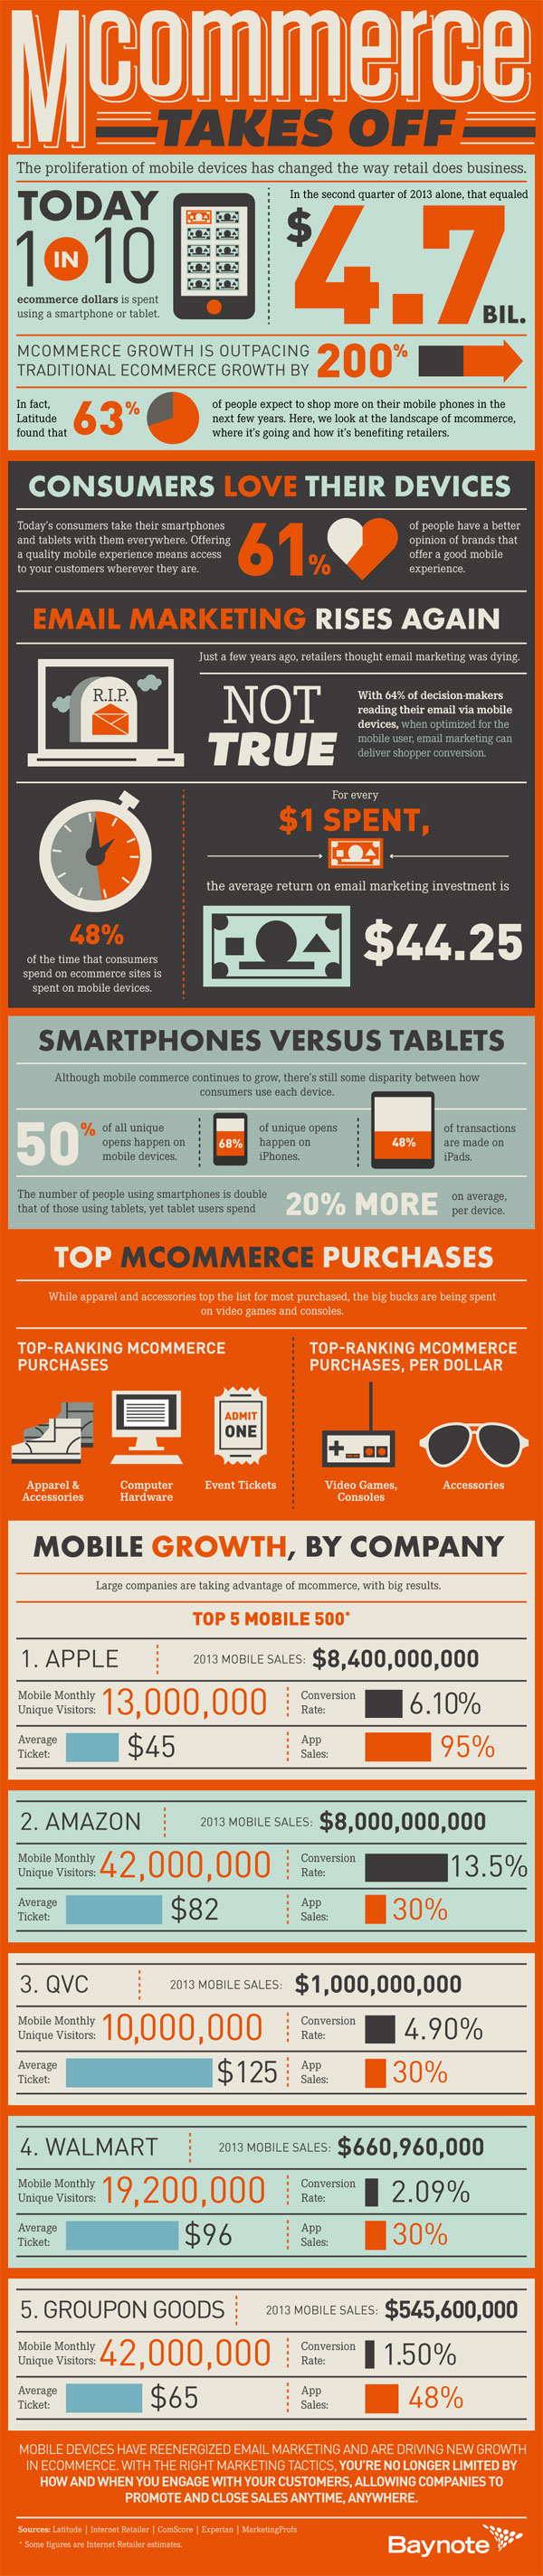 mobile-commerce-infographic1